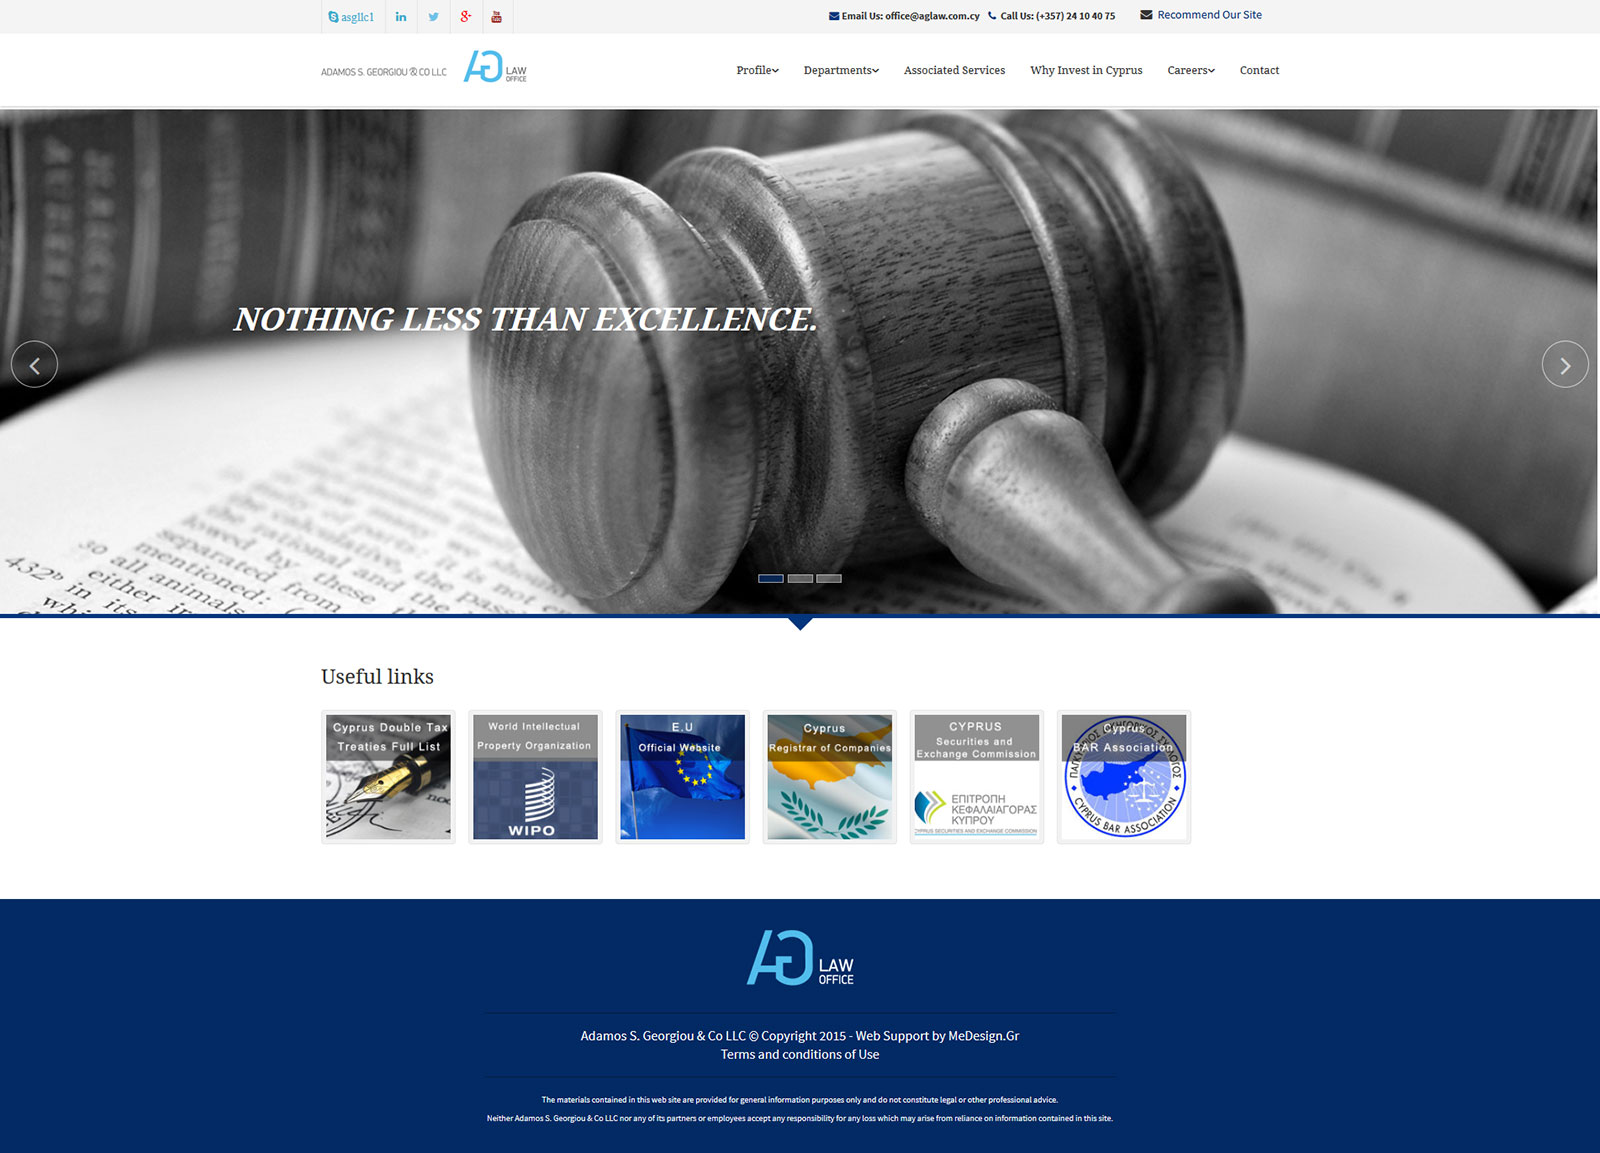 lawyer-firm-adamos